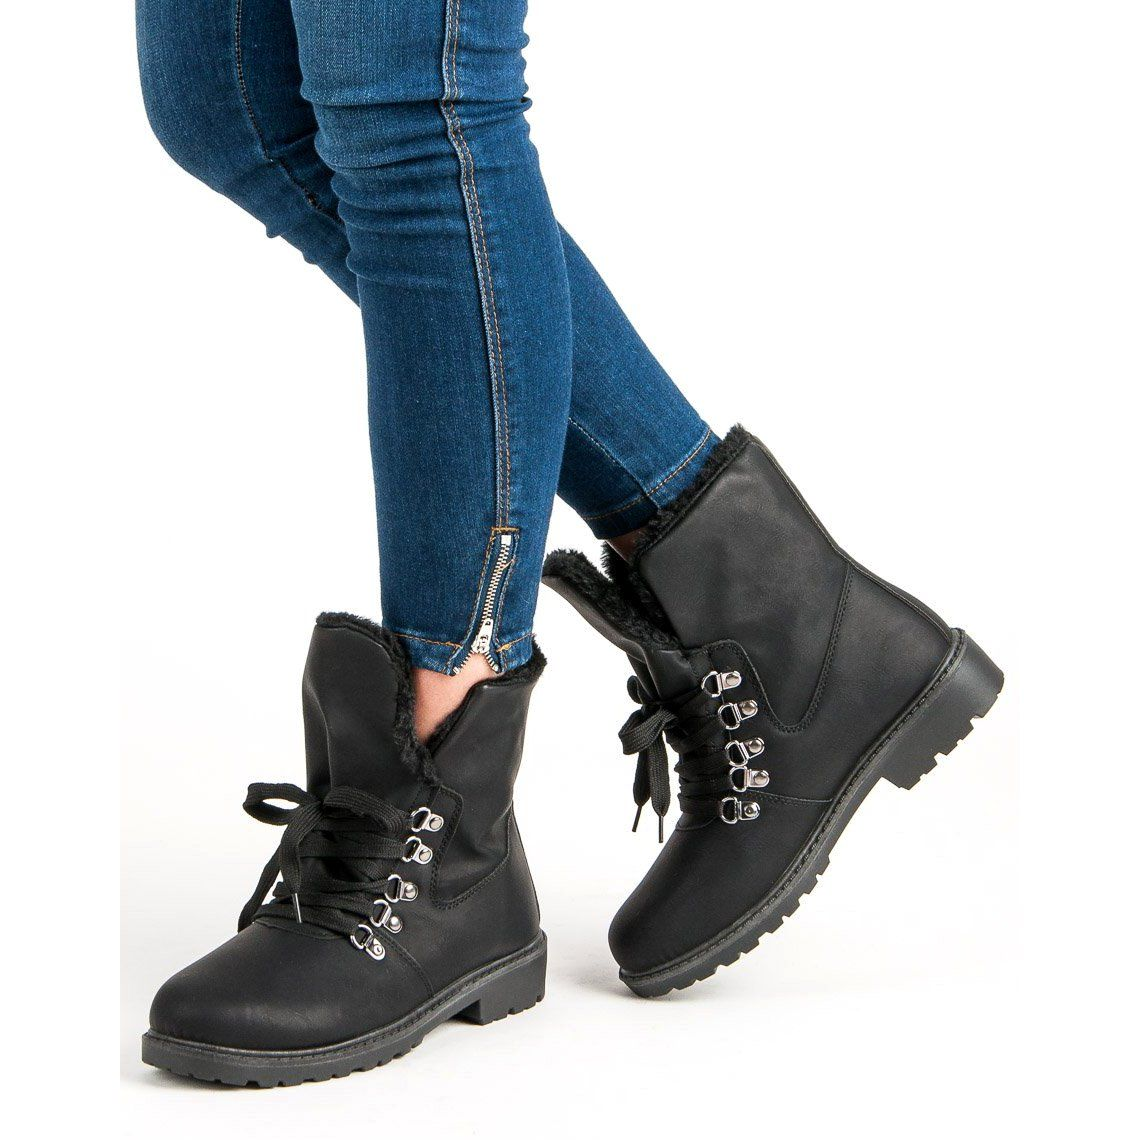 Super Me Ocieplane Botki Czarne Timberland Boots Boots Shoes